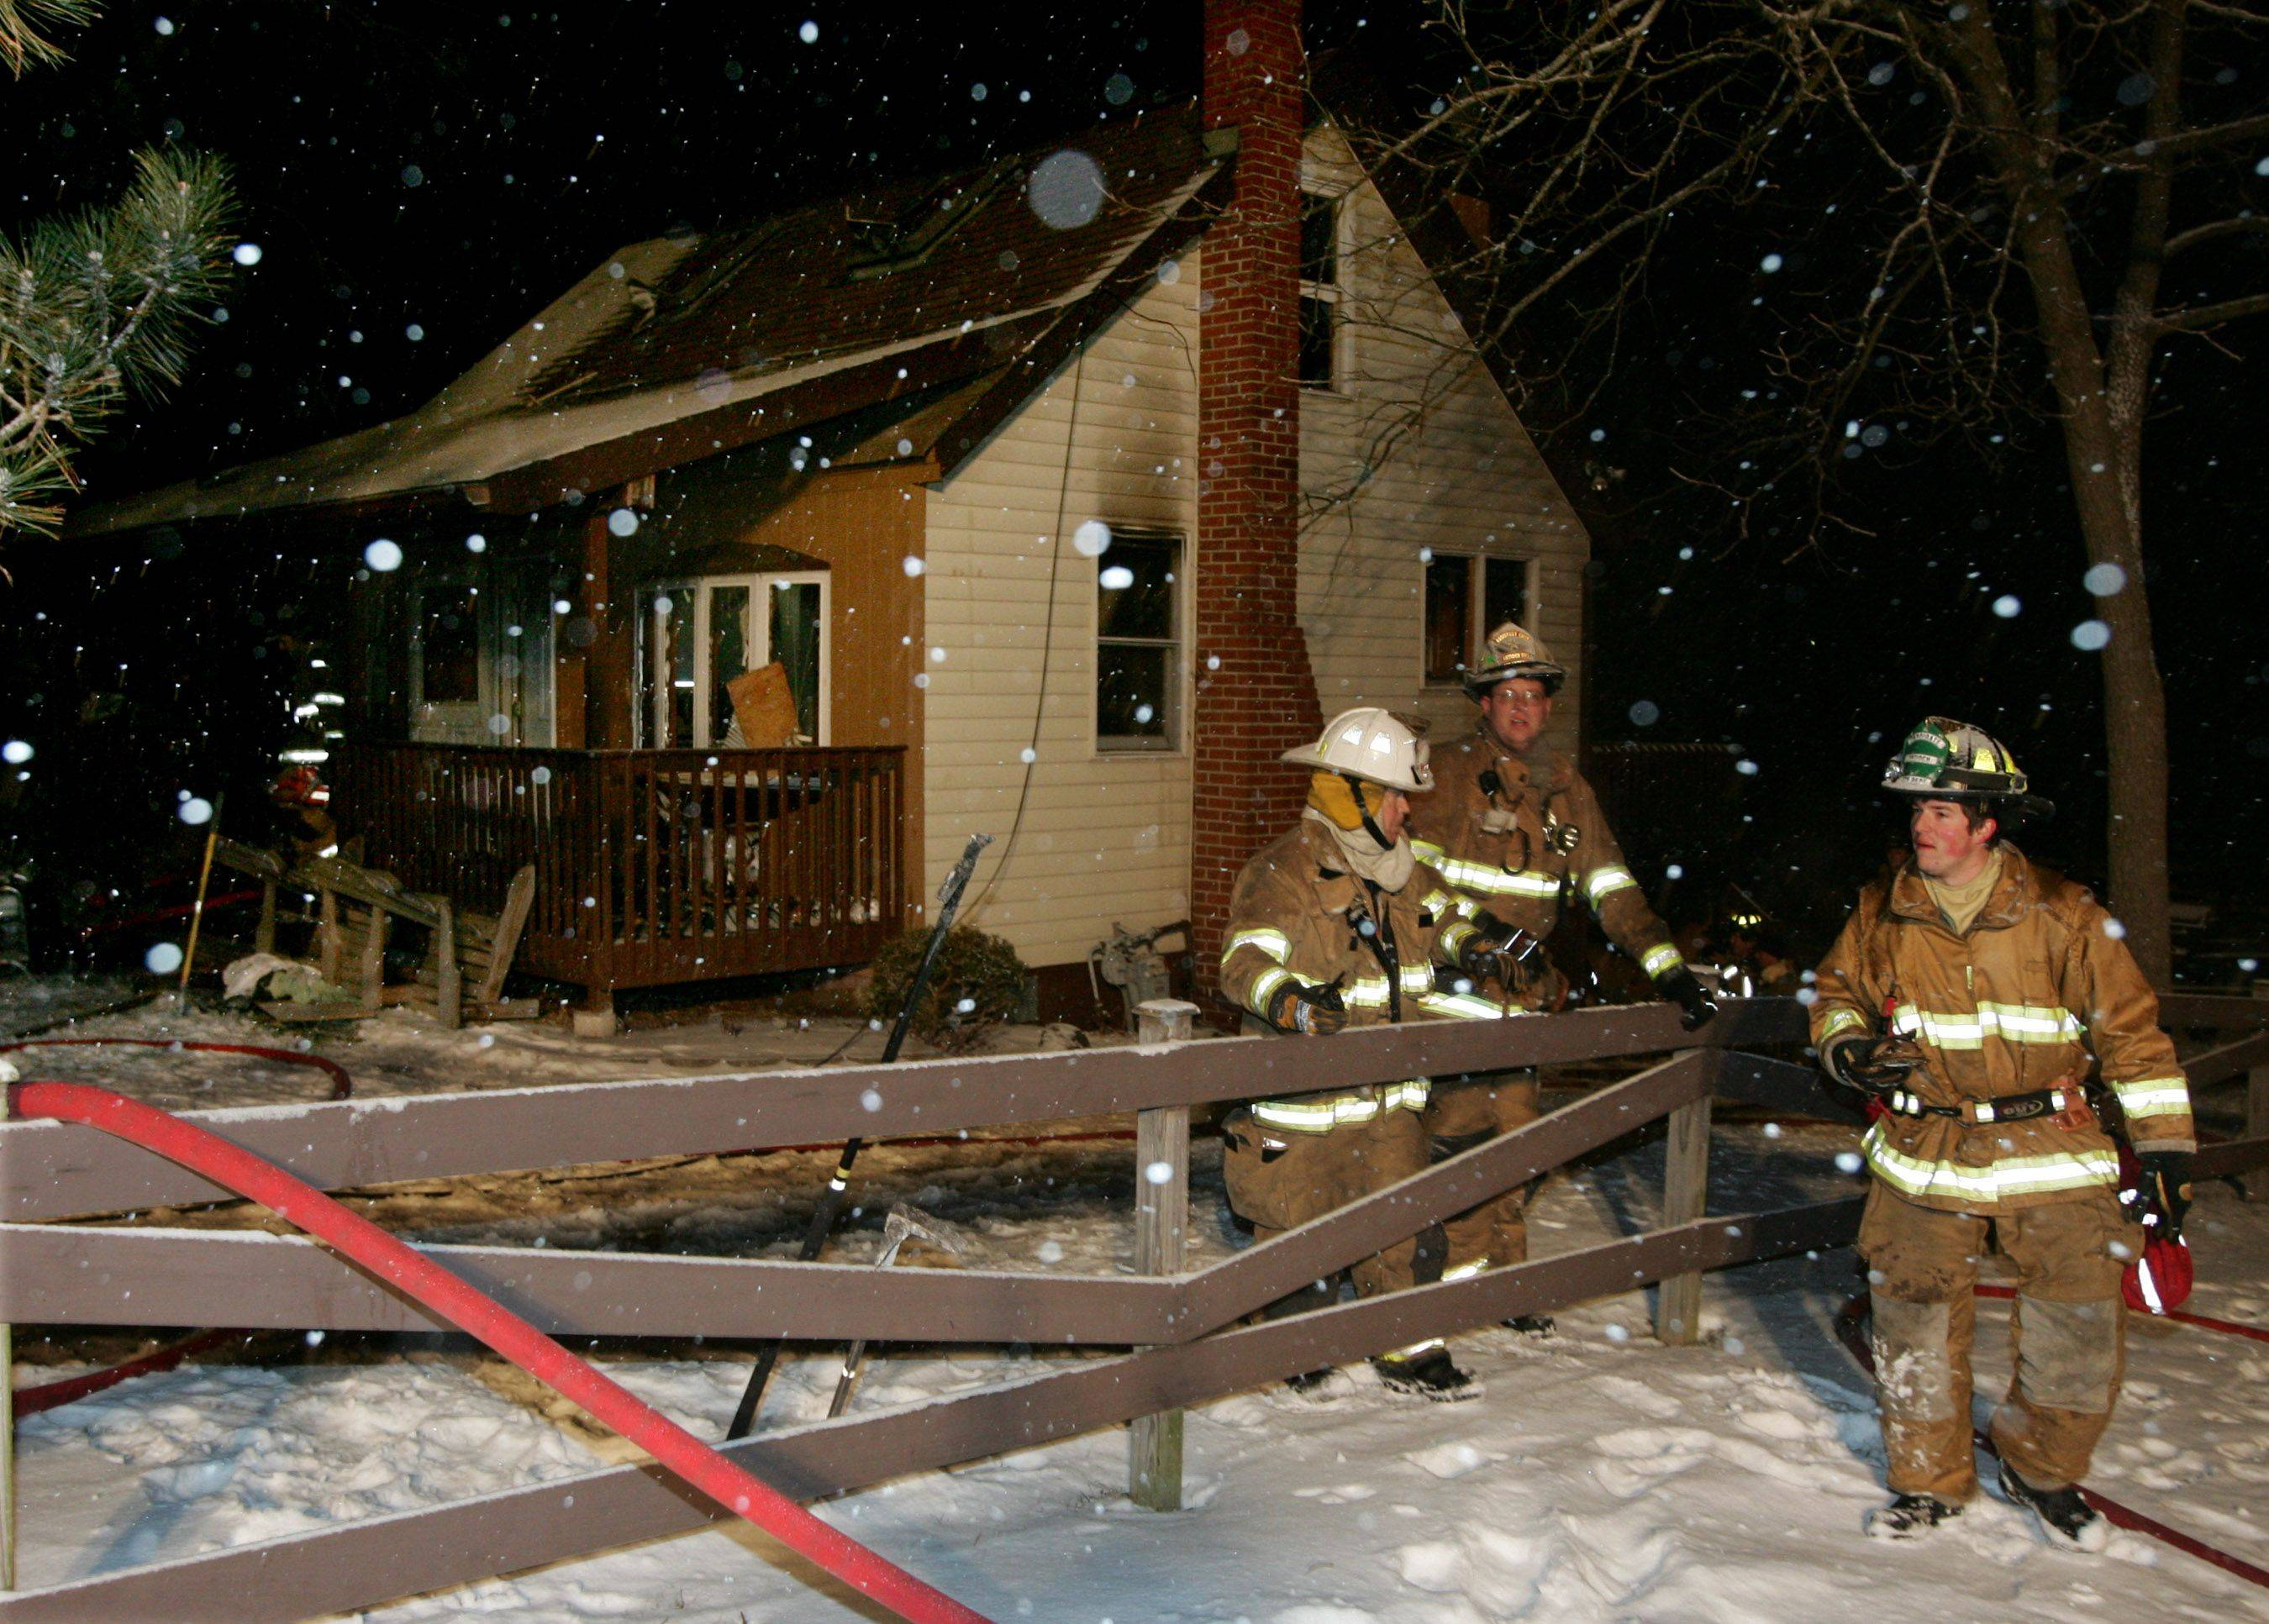 The Antioch Fire Department battles a house fire on the 26300 block of West Prospect Street Monday. The rural fire was called in at 5:12 p.m. and required help from several other departments including Fox Lake, Lake Villa, Round Lake and others. Firefighters battled the blaze as heavy snow fell around them.